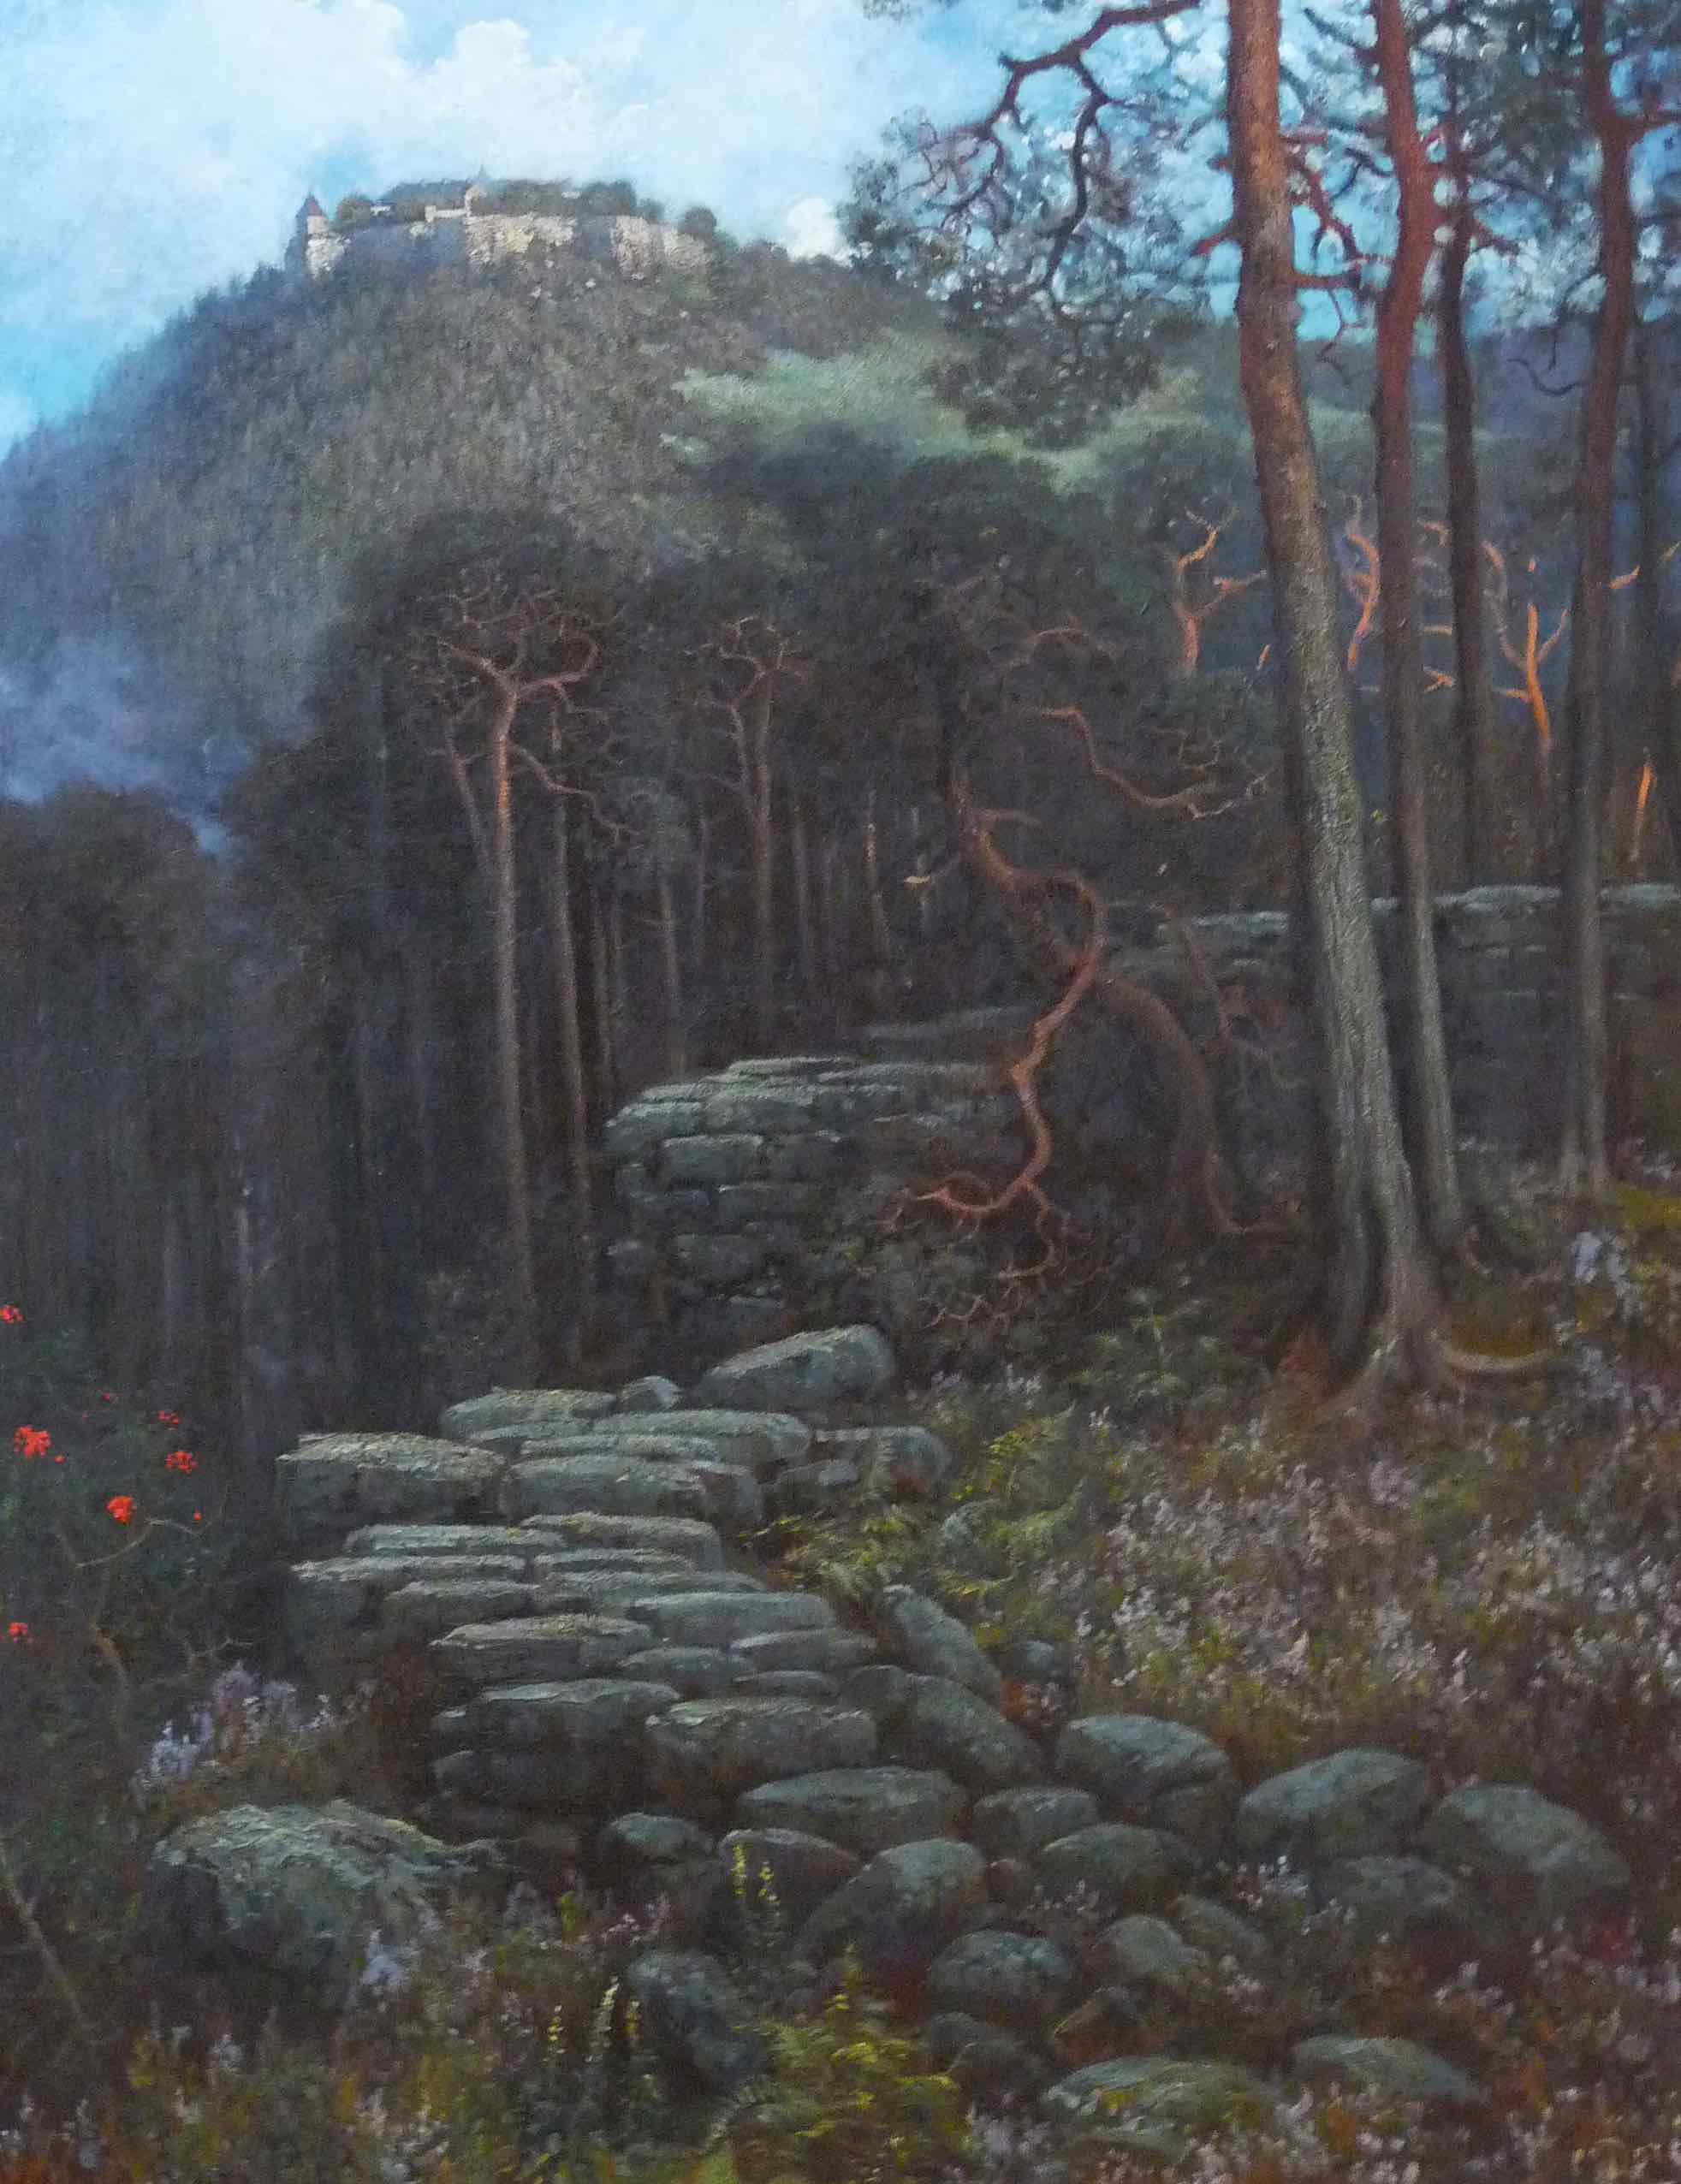 Mont Sainte-Odile with Pagan Wall, 1883, by Gustave Doré ©Wikimedia Commons